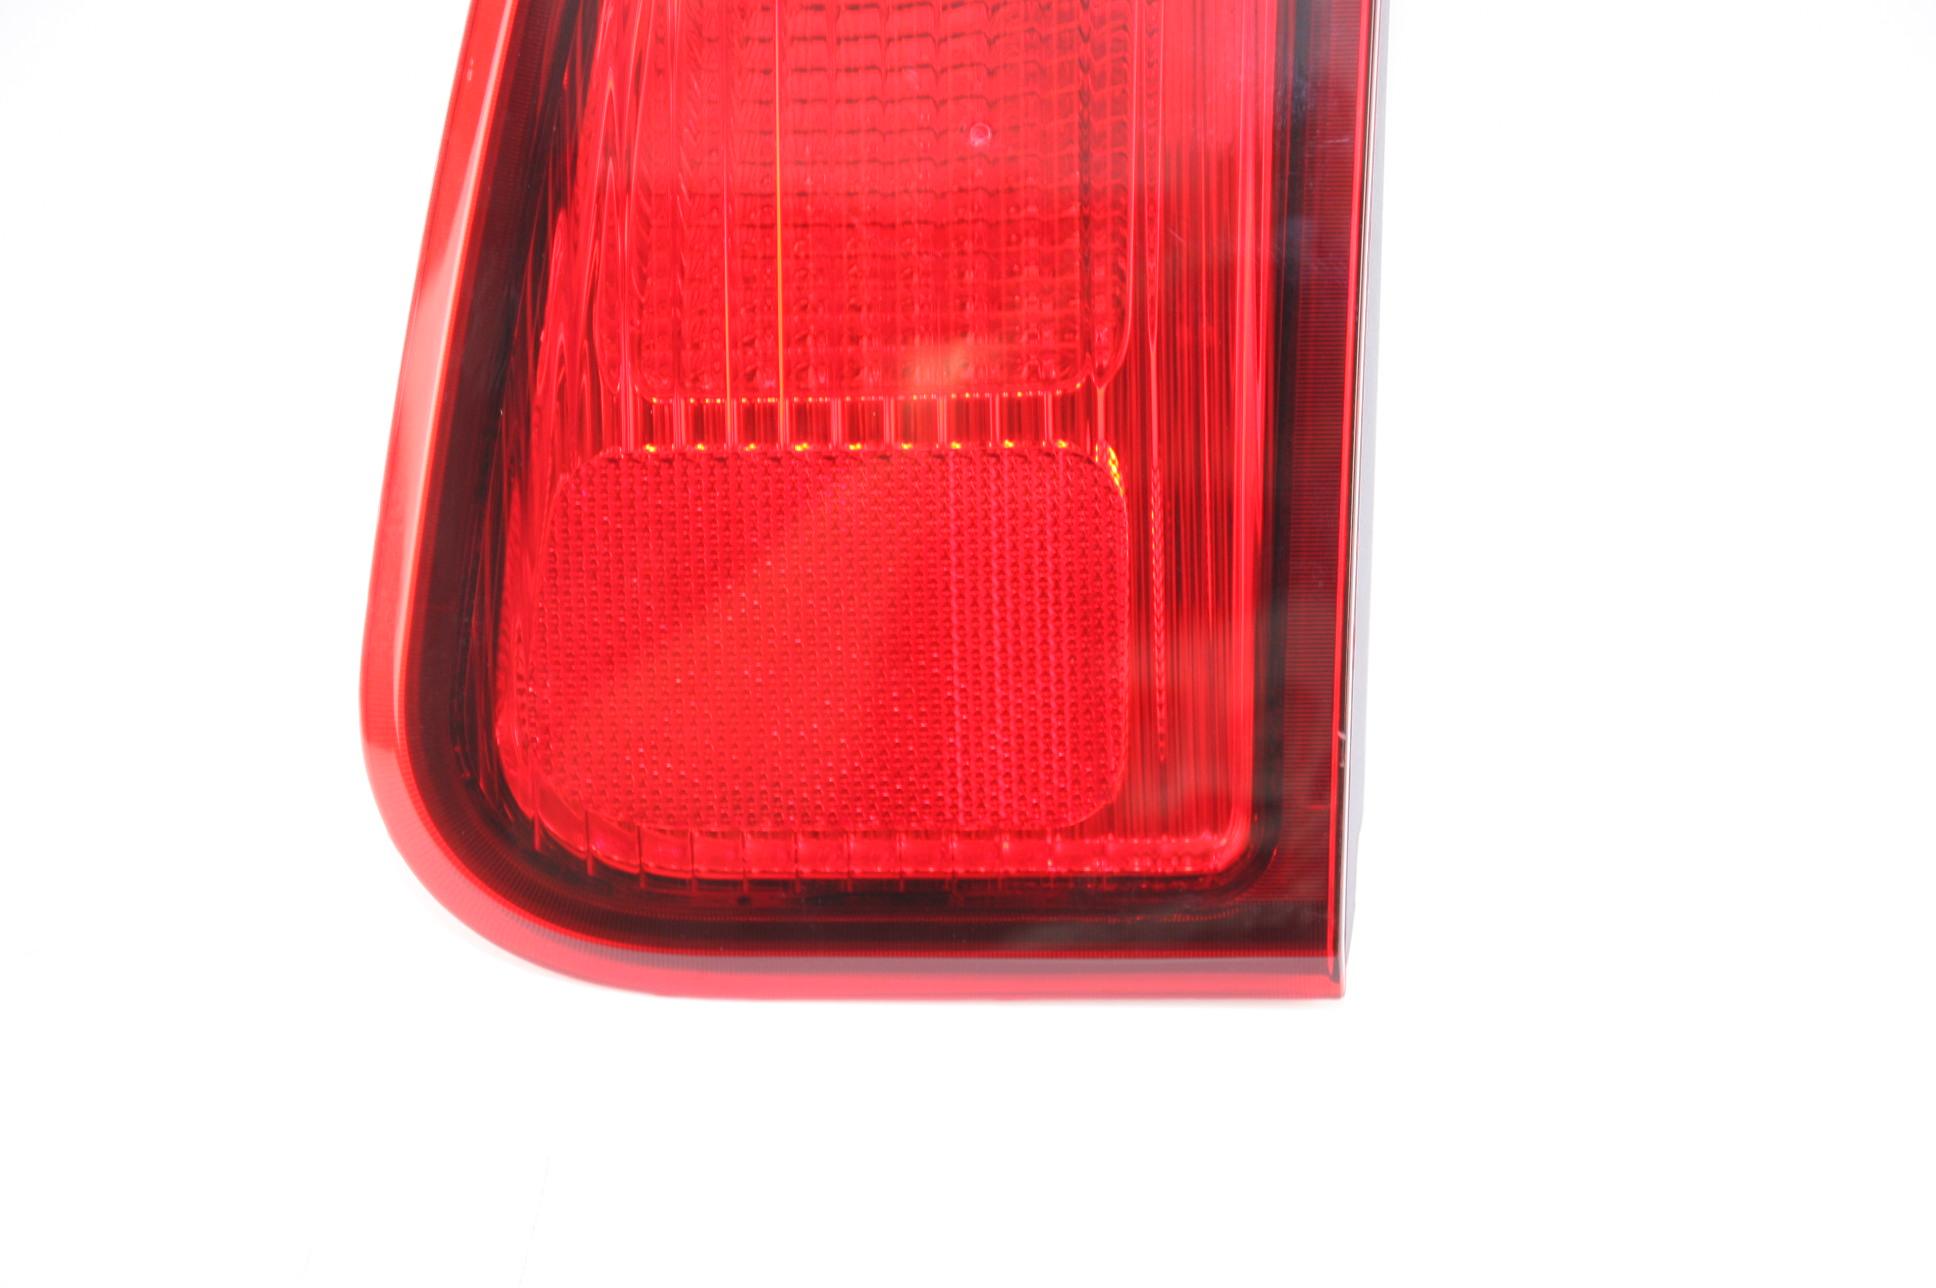 **** New OEM 2L7Z13404CA Ford Lincoln Navigator Taillight Tail Light Lamp RH - image 4